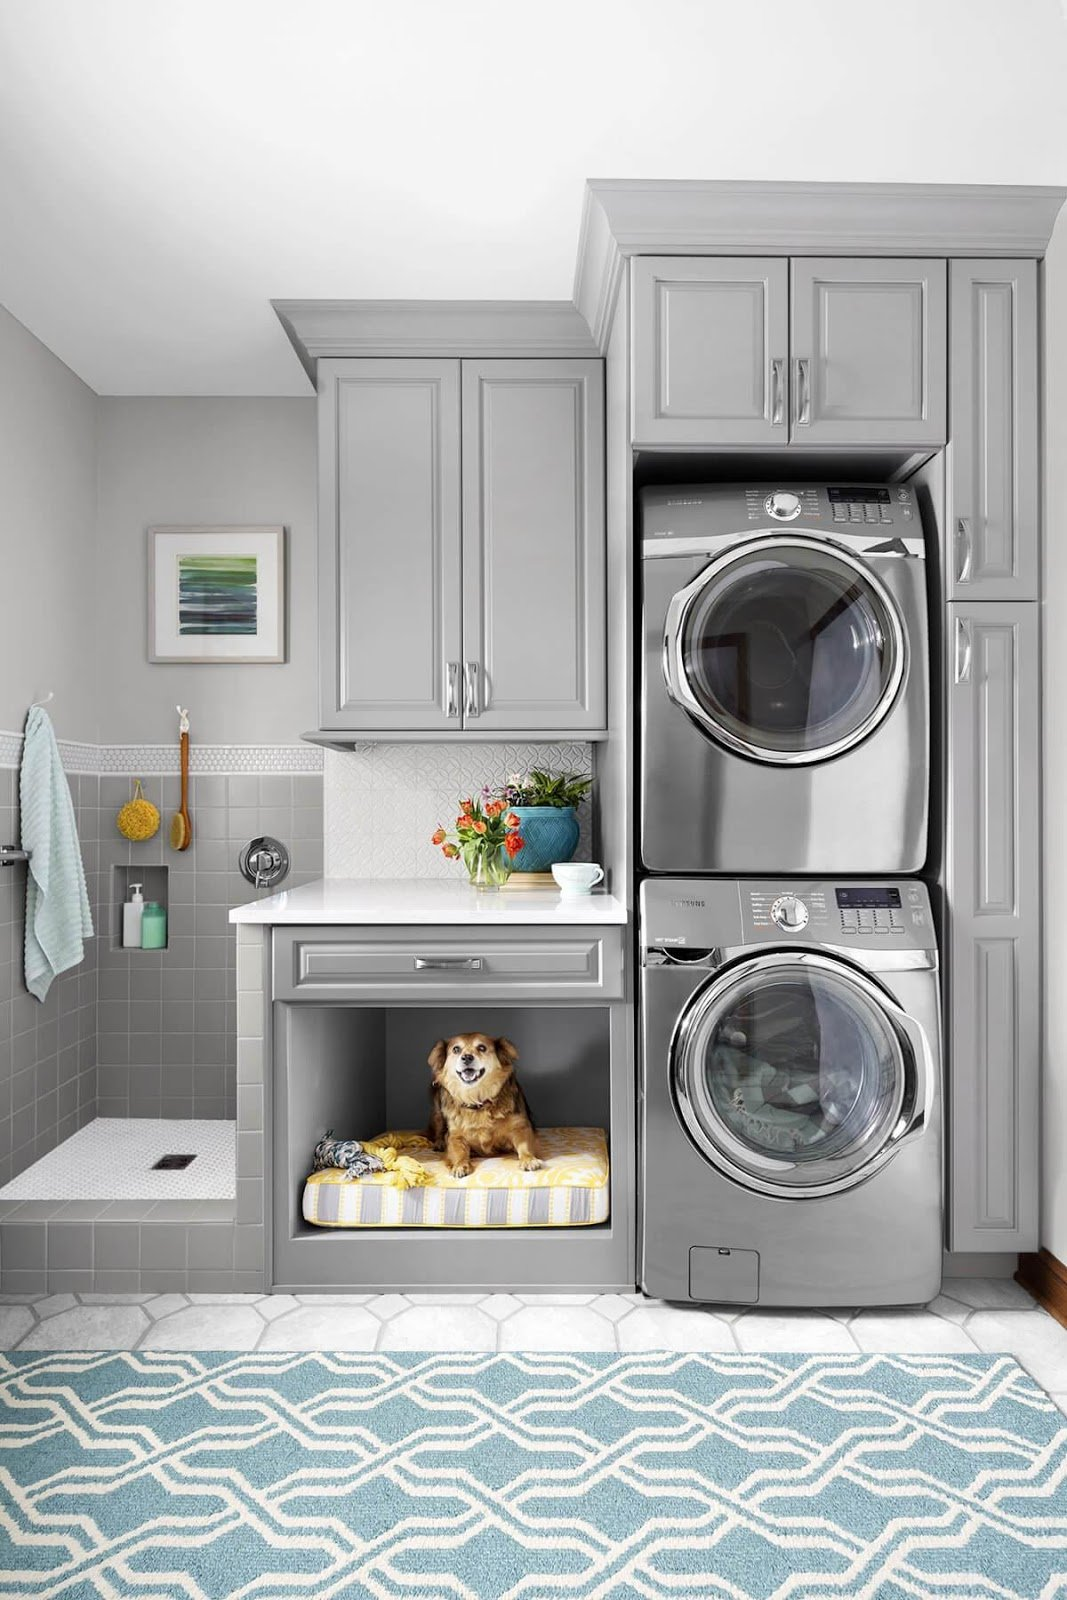 10. Clothes and Pet Cleaning Laundry Room by simphome.com